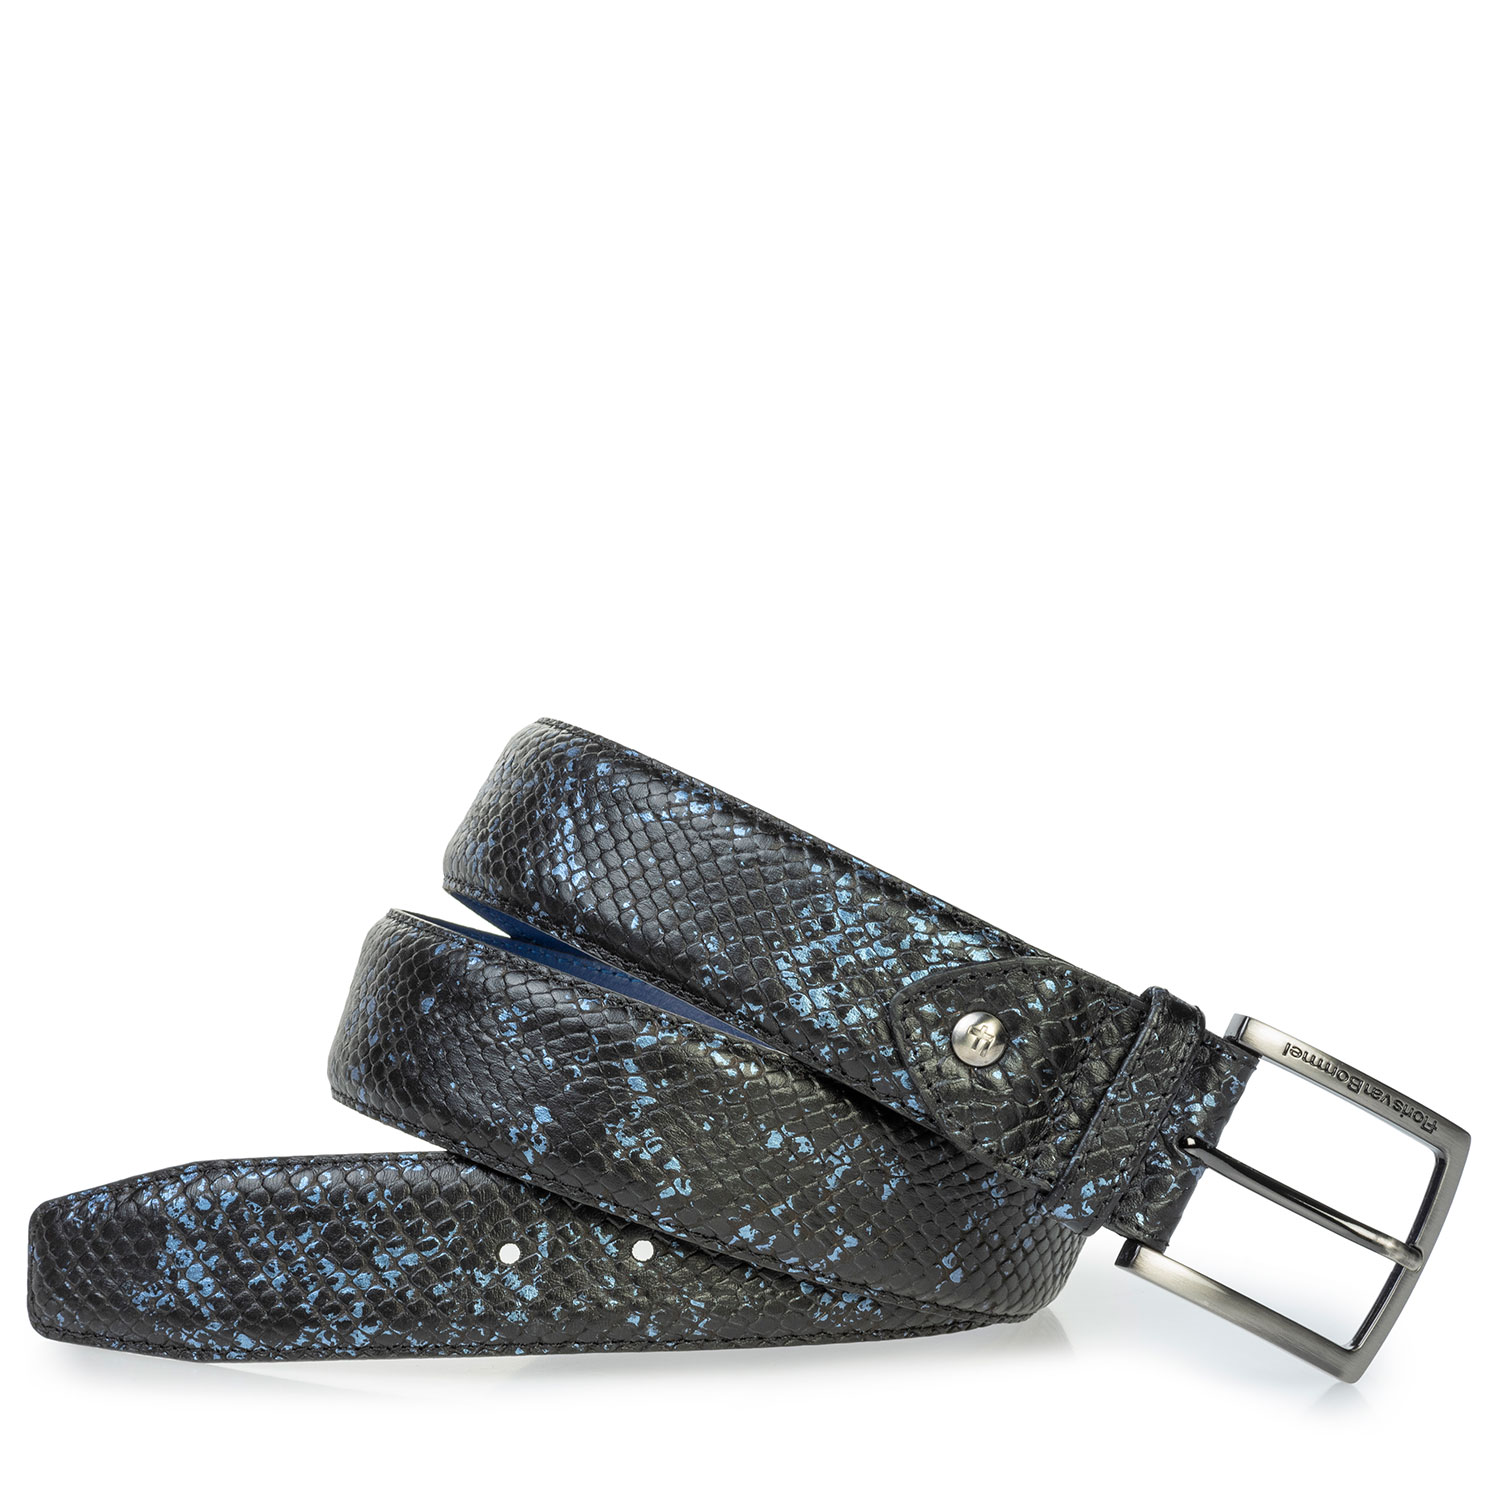 75204/05 - Leather belt with metallic print blue